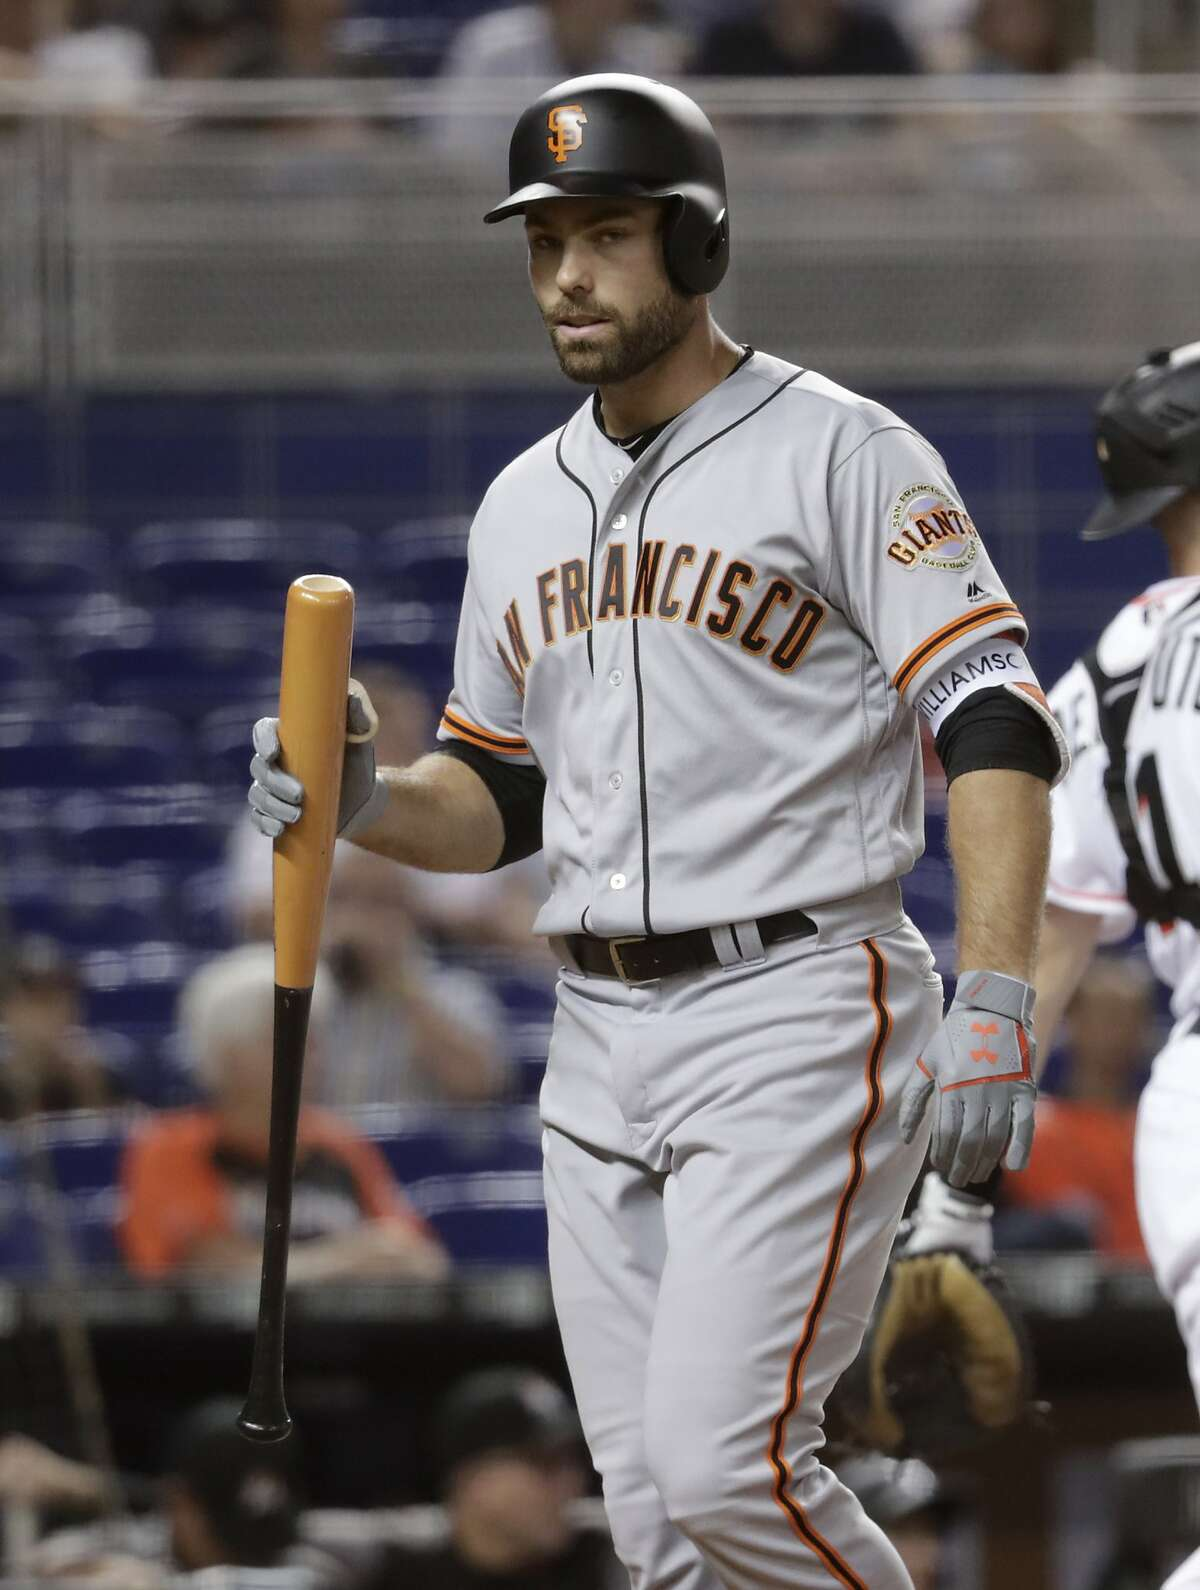 Then-Giants outfielder Mac Williamson strikes out in Miami in June 2018; a few weeks earlier he was hurt at AT&T Park.